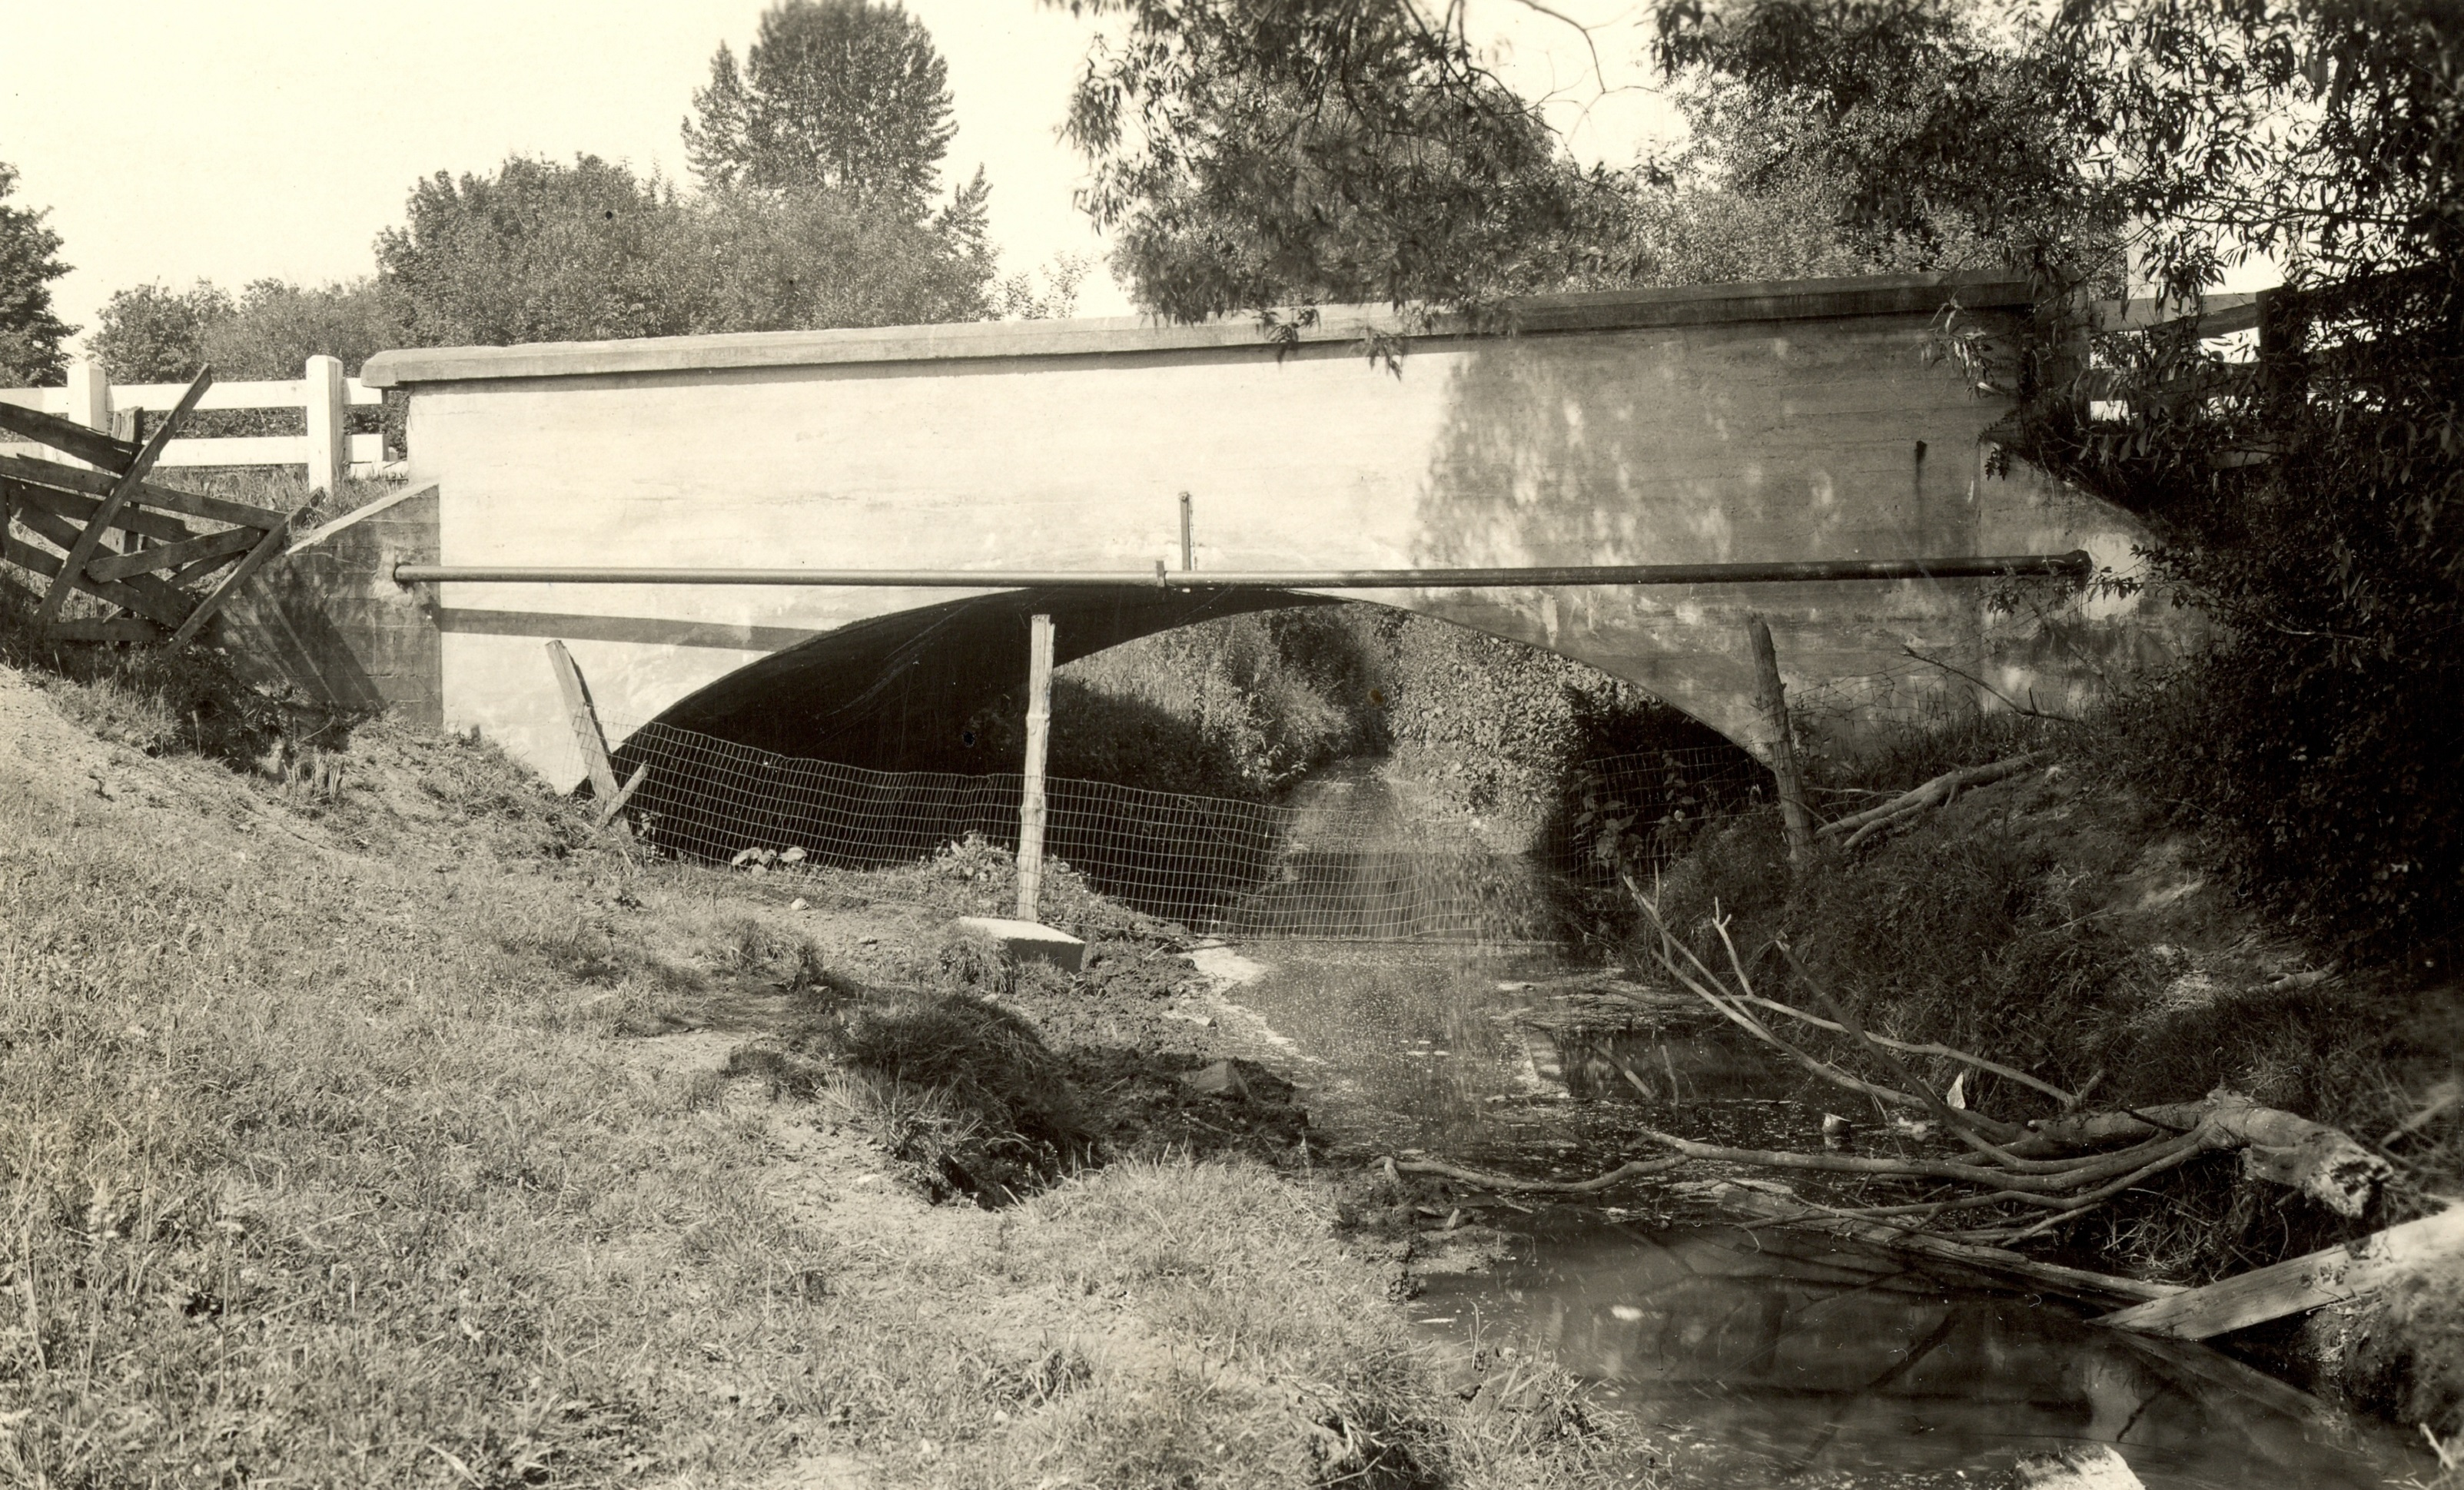 Bridge_no_1851A___June_23_1932__TPBlum